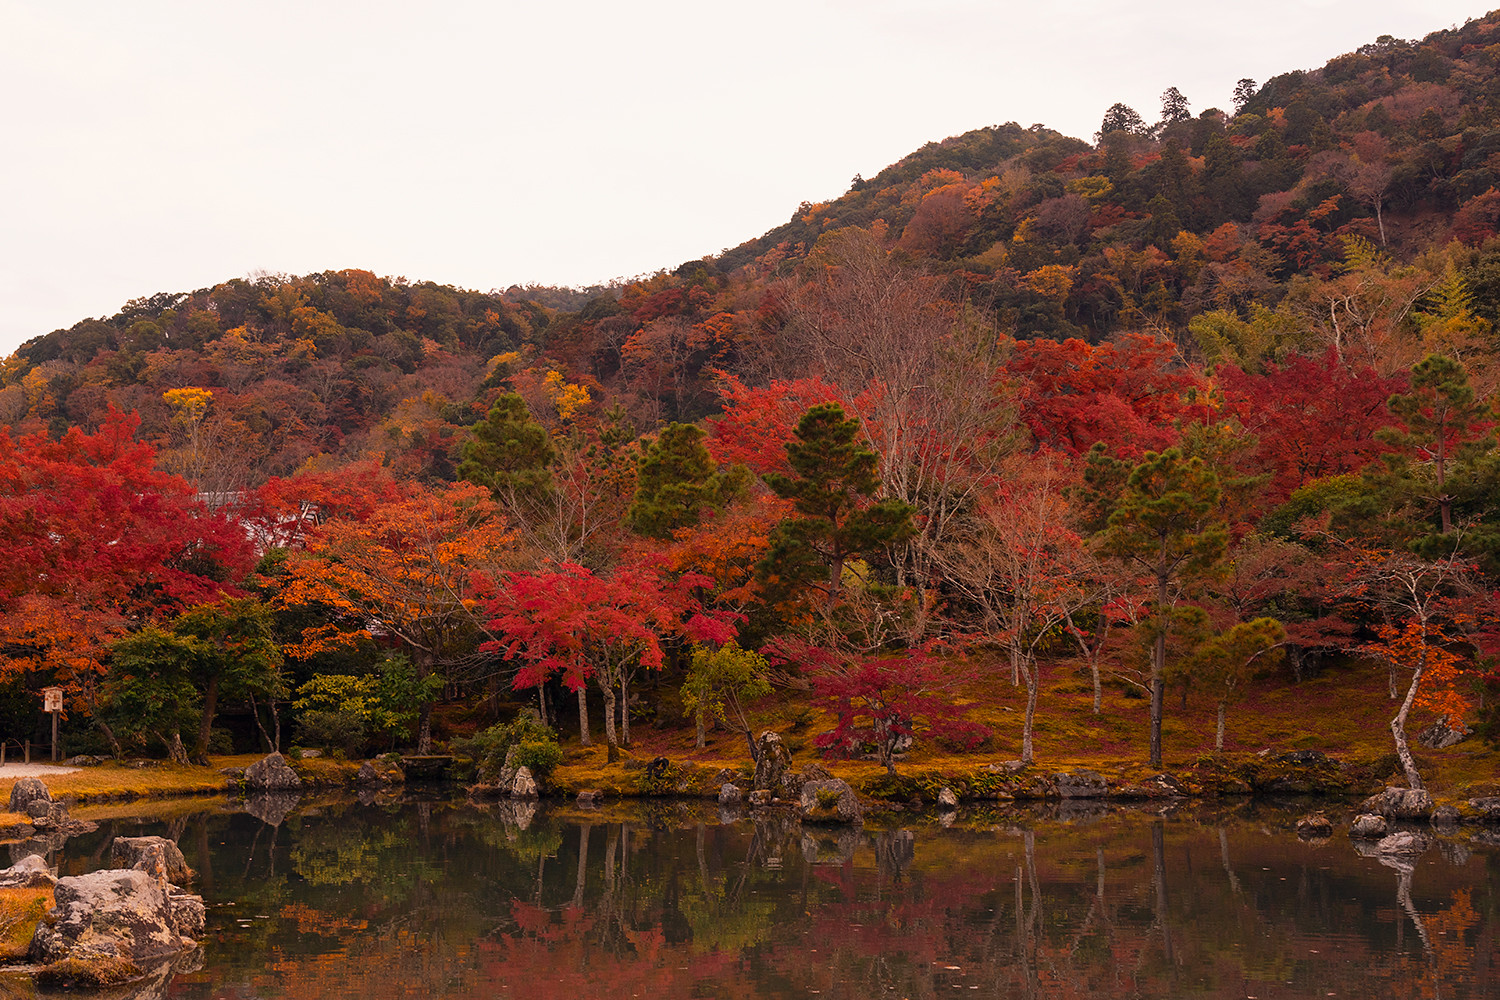 12kyoto-tenryuji-japan-landscape-autumn-travel